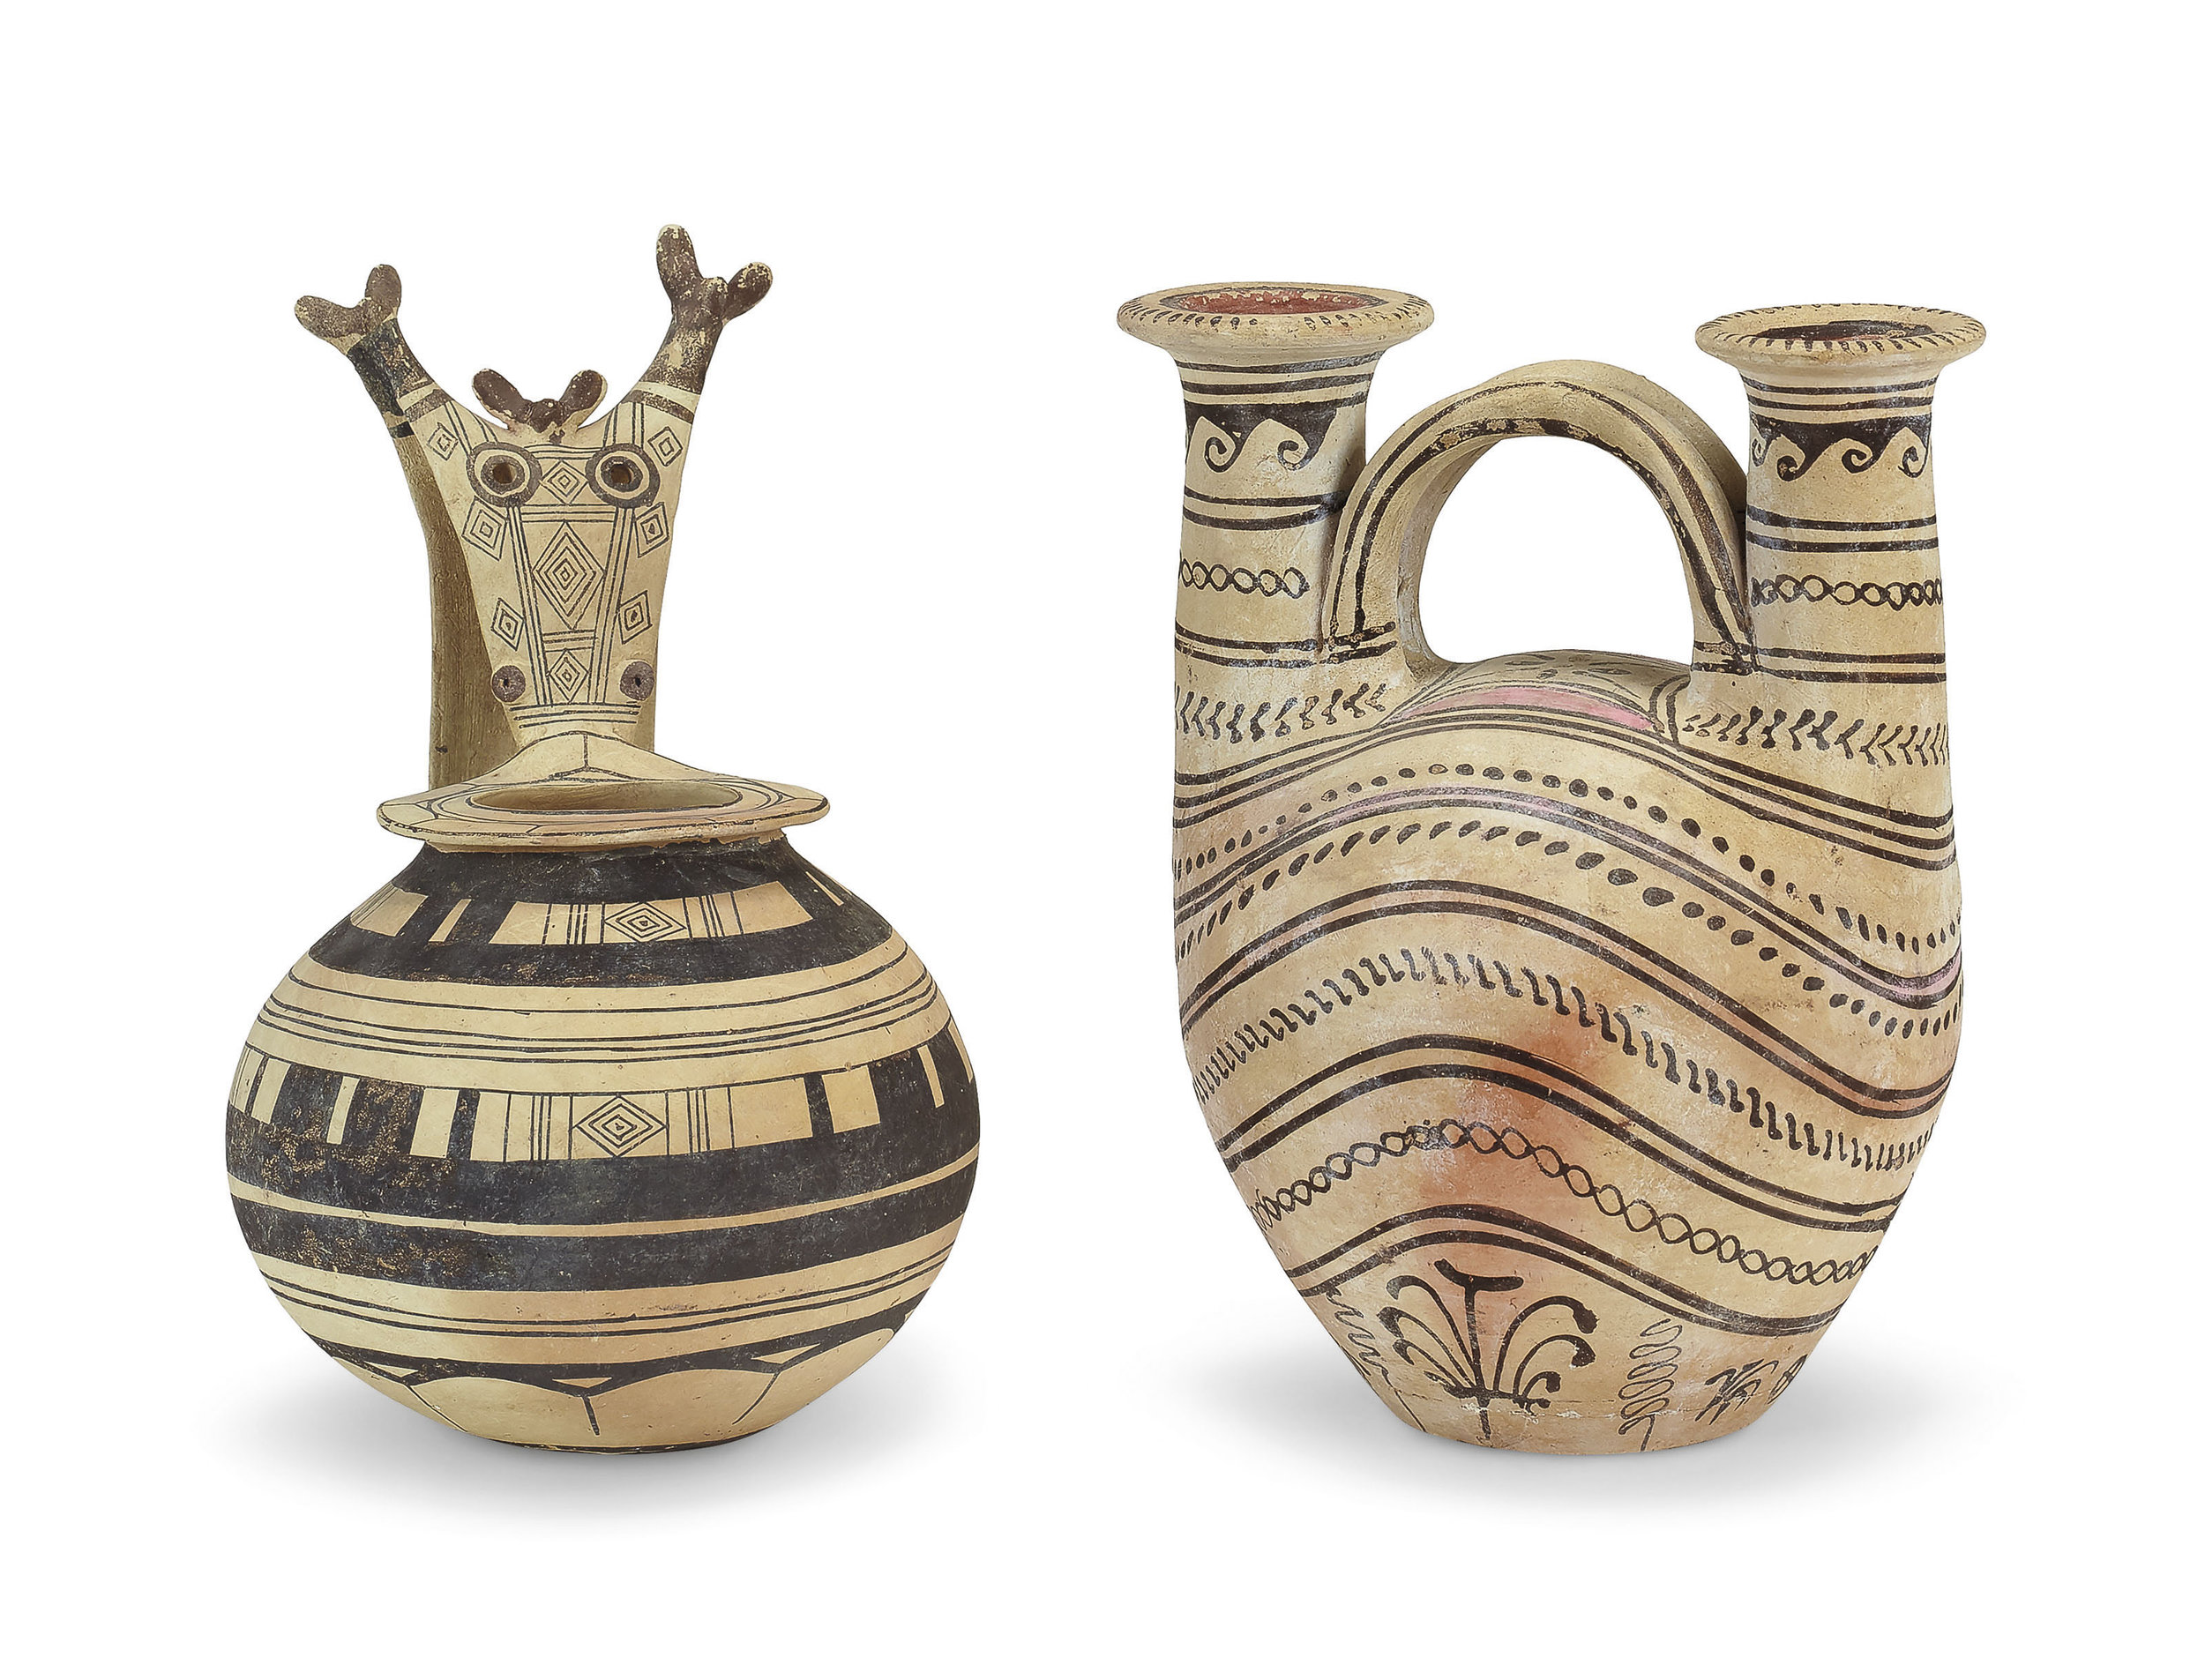 2019_NYR_17459_0179_000(two_daunian_pottery_vessels_circa_6th-3rd_century_bc).jpg